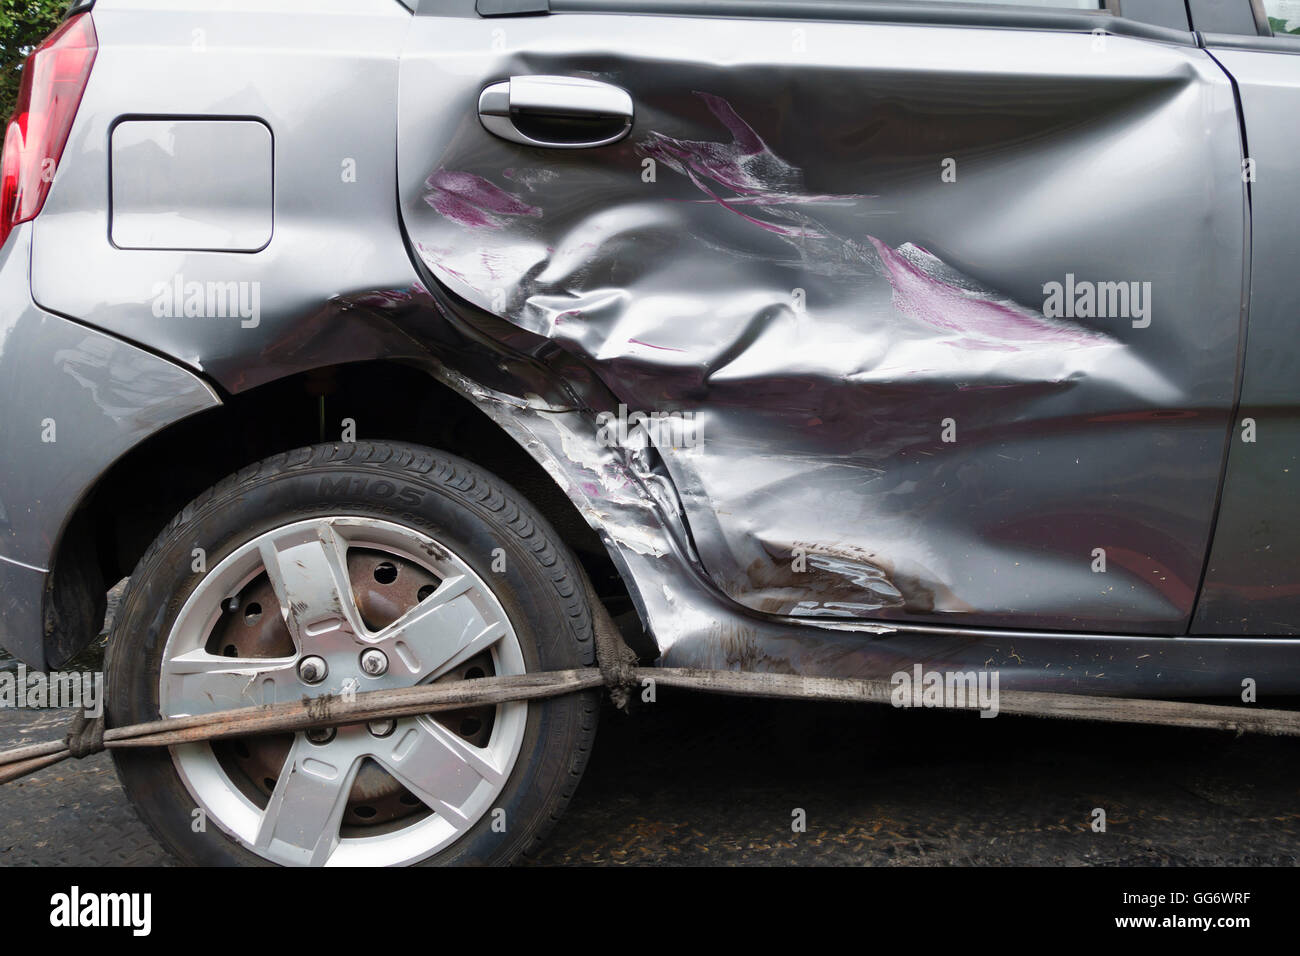 Uk A Car With A Badly Dented Rear Door Following A Collision With